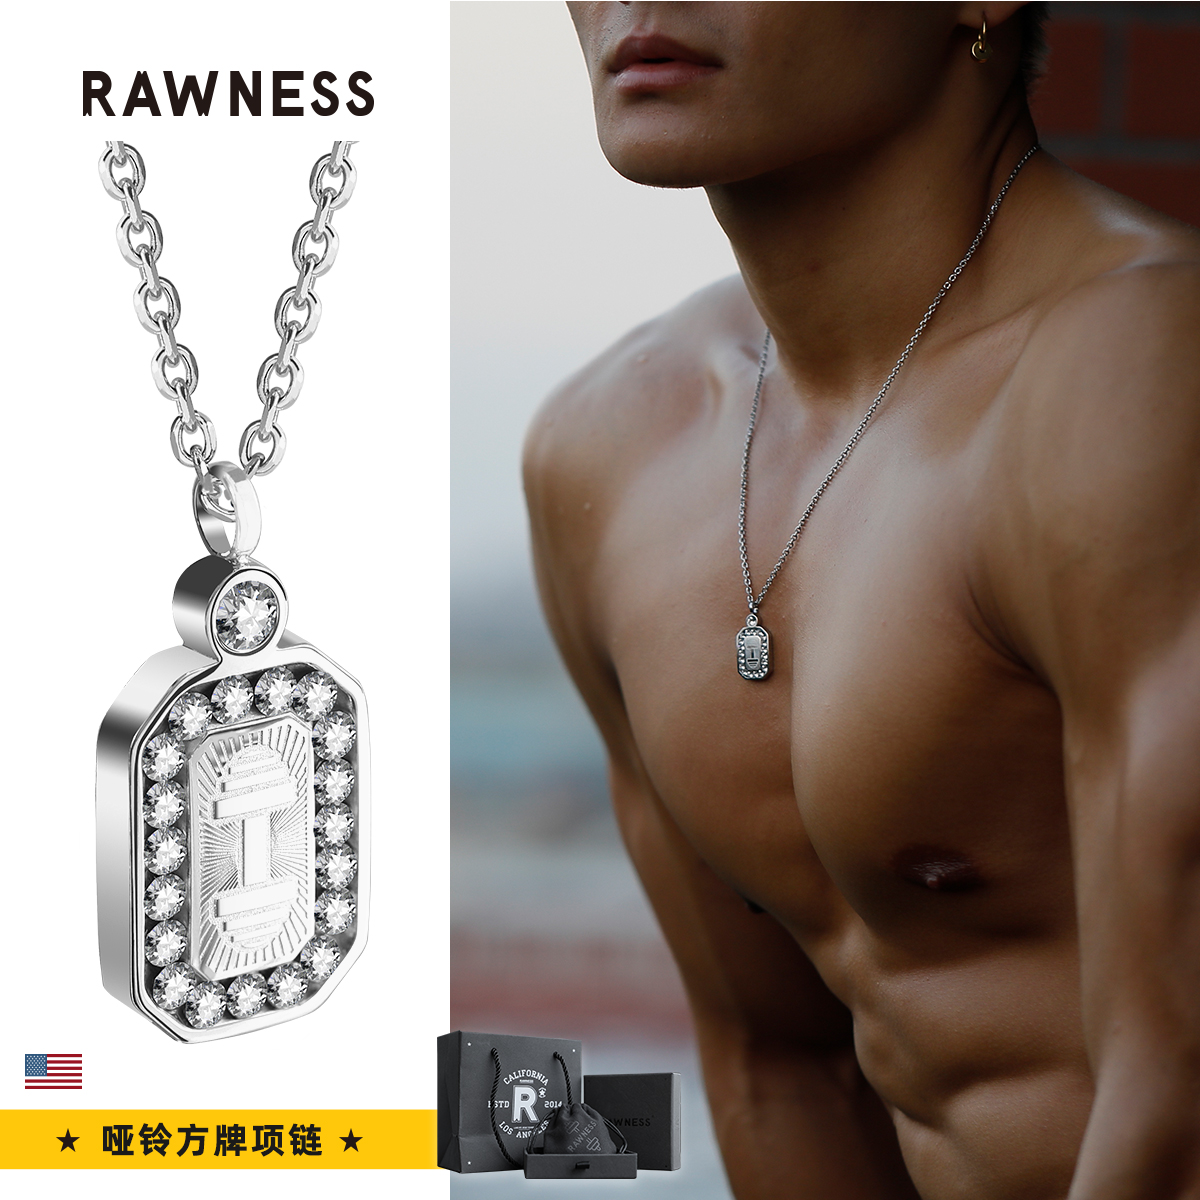 RAWNESS Square Full Diamond dumbbell necklace sweater chain American retro shape titanium steel collarbone chain fit